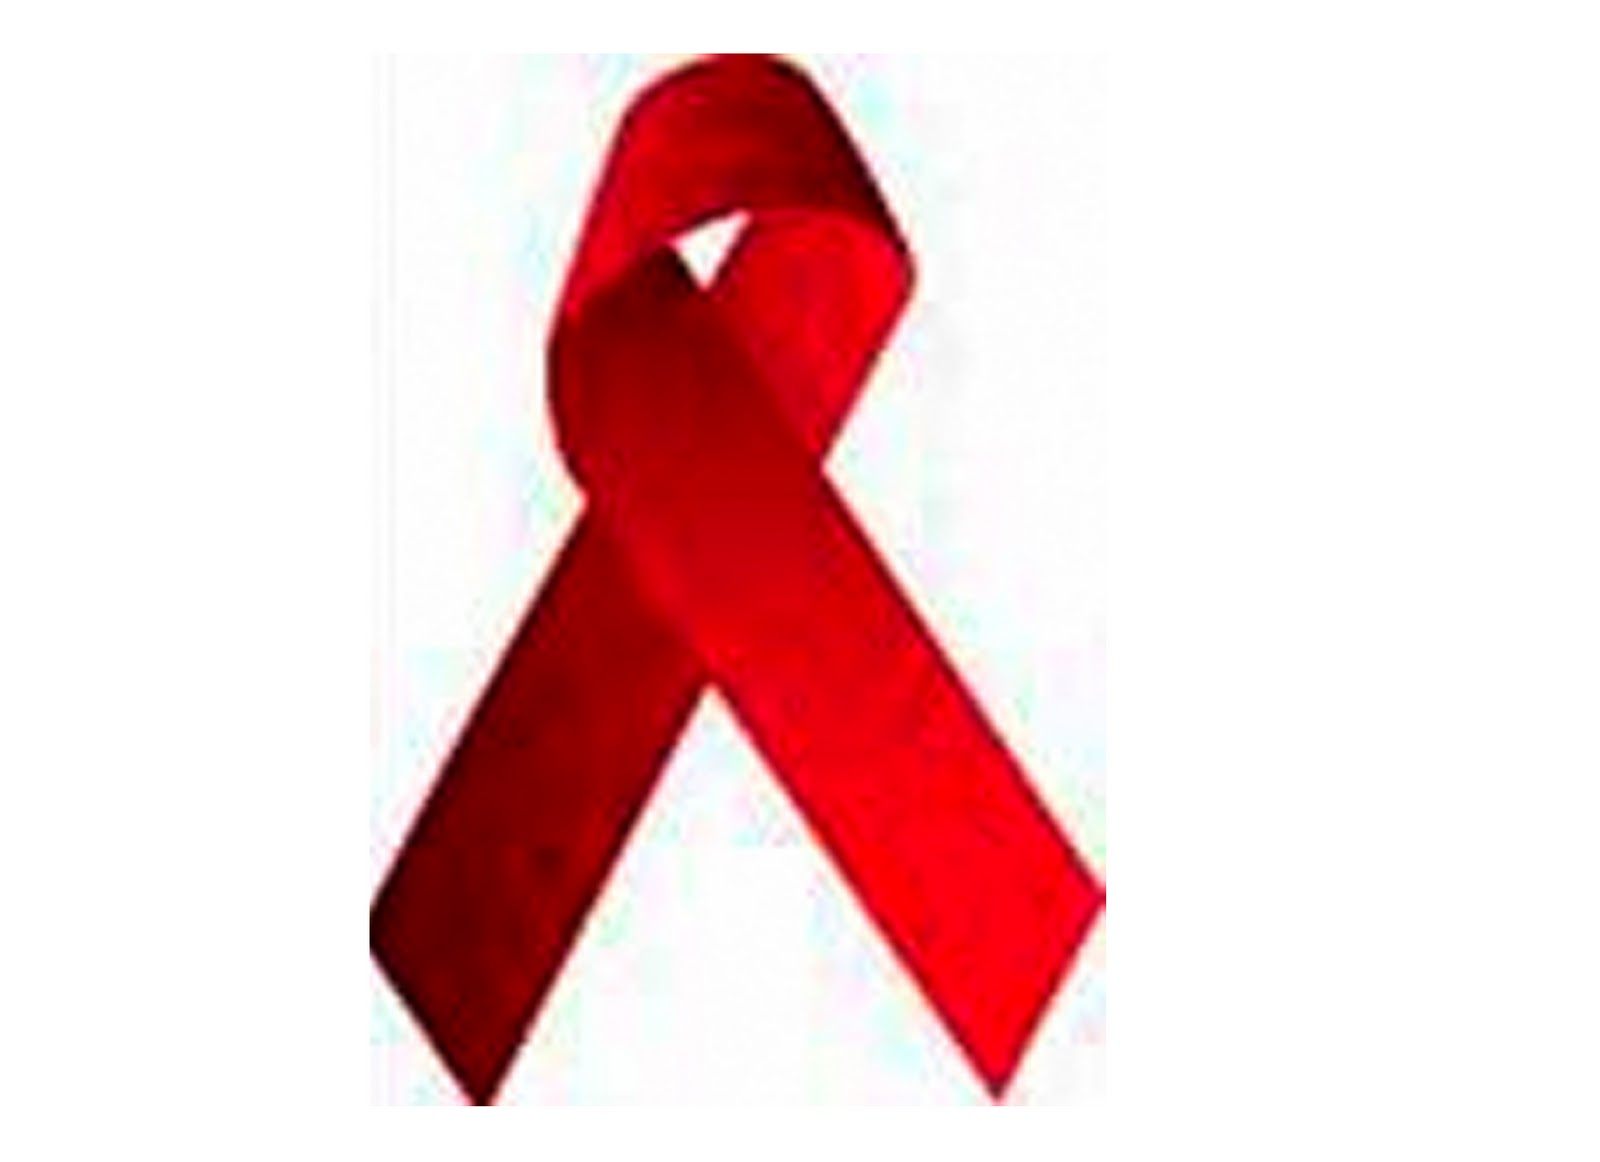 essay on hiv aids awareness Read this essay on hiv aids essay the first day of december commemorates world aids day, a celebration for hiv-aids awareness people all over the world have gathered to honor this day and to support this advocacy but what is hiv and aids.